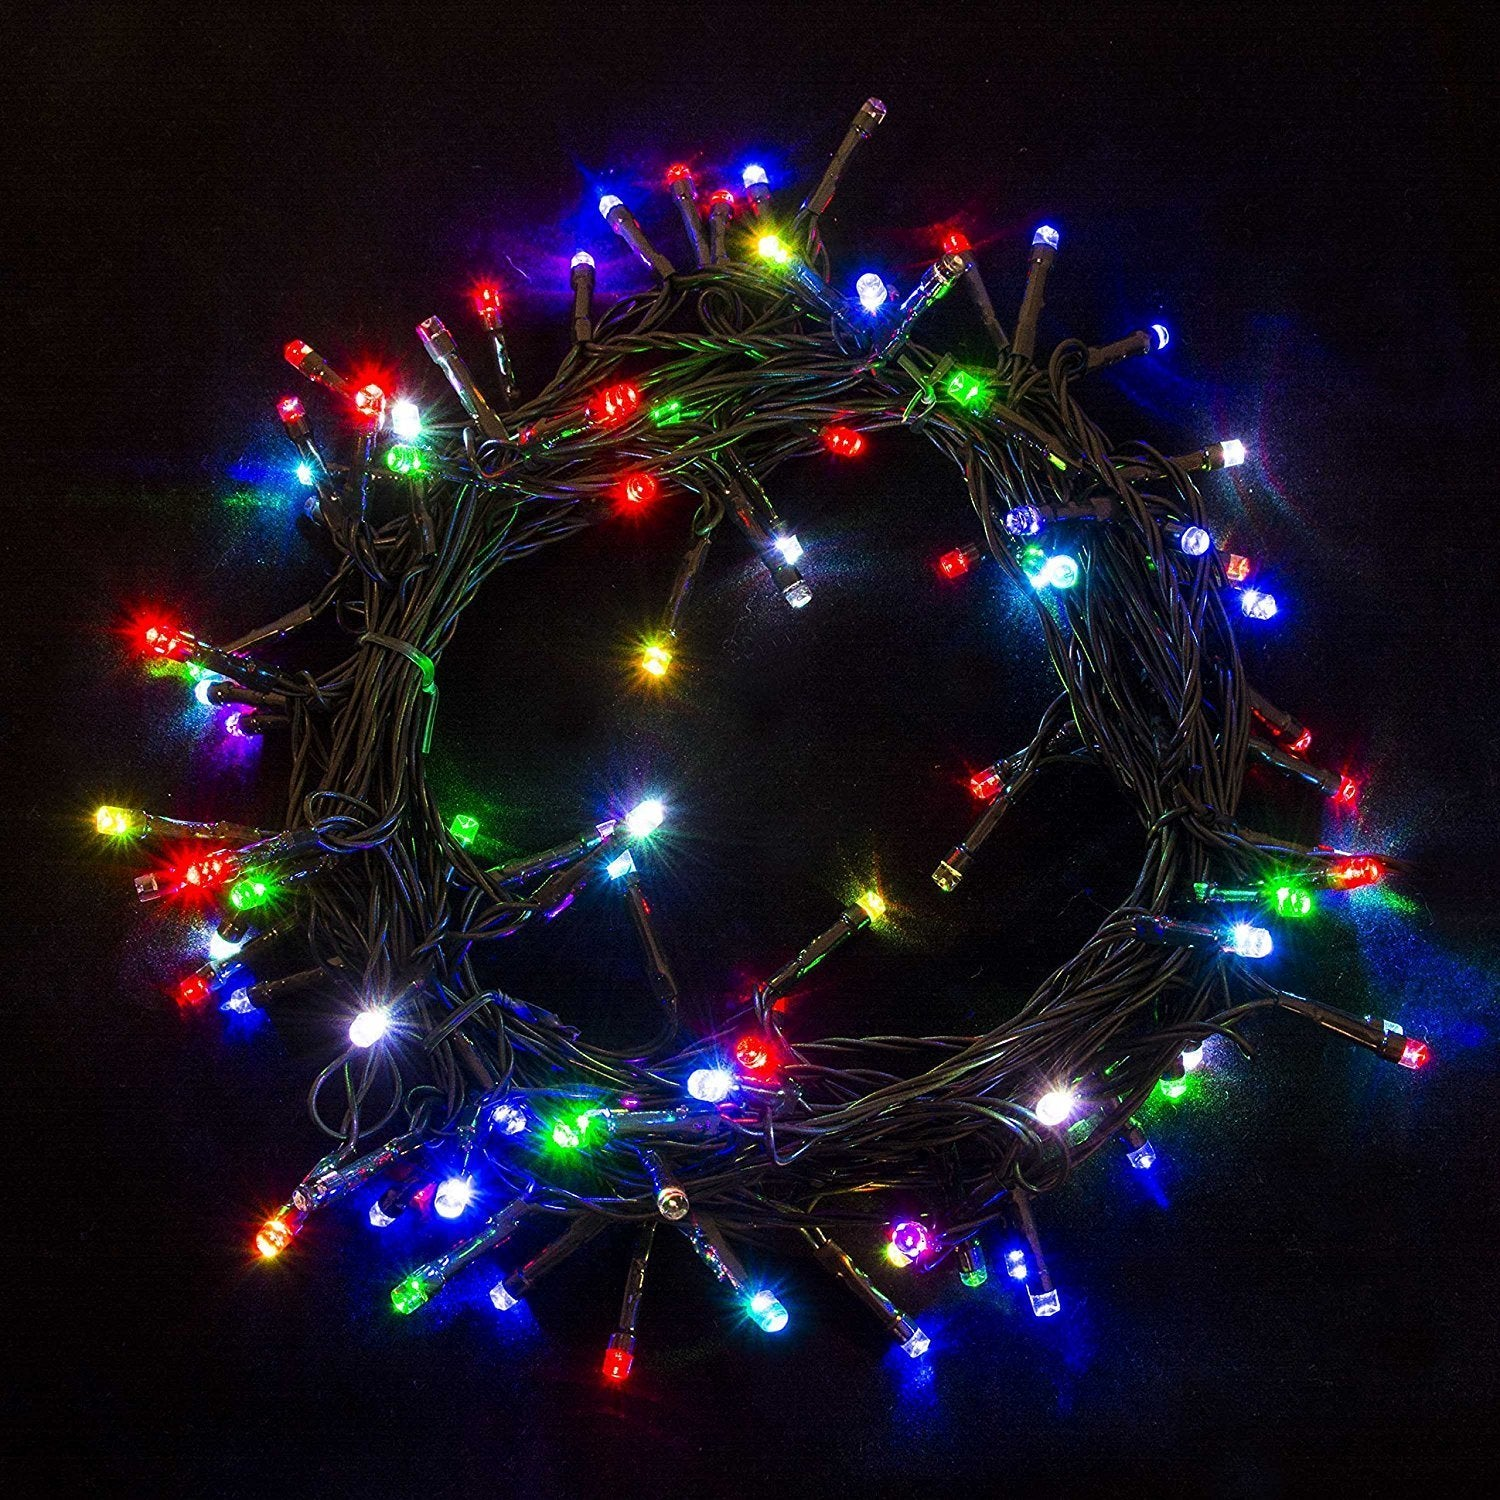 Shop Electric 100 LED Multicolor Christmas Holiday Light 34 Feet - On Sale - Ships To Canada - Overstock - 18843962